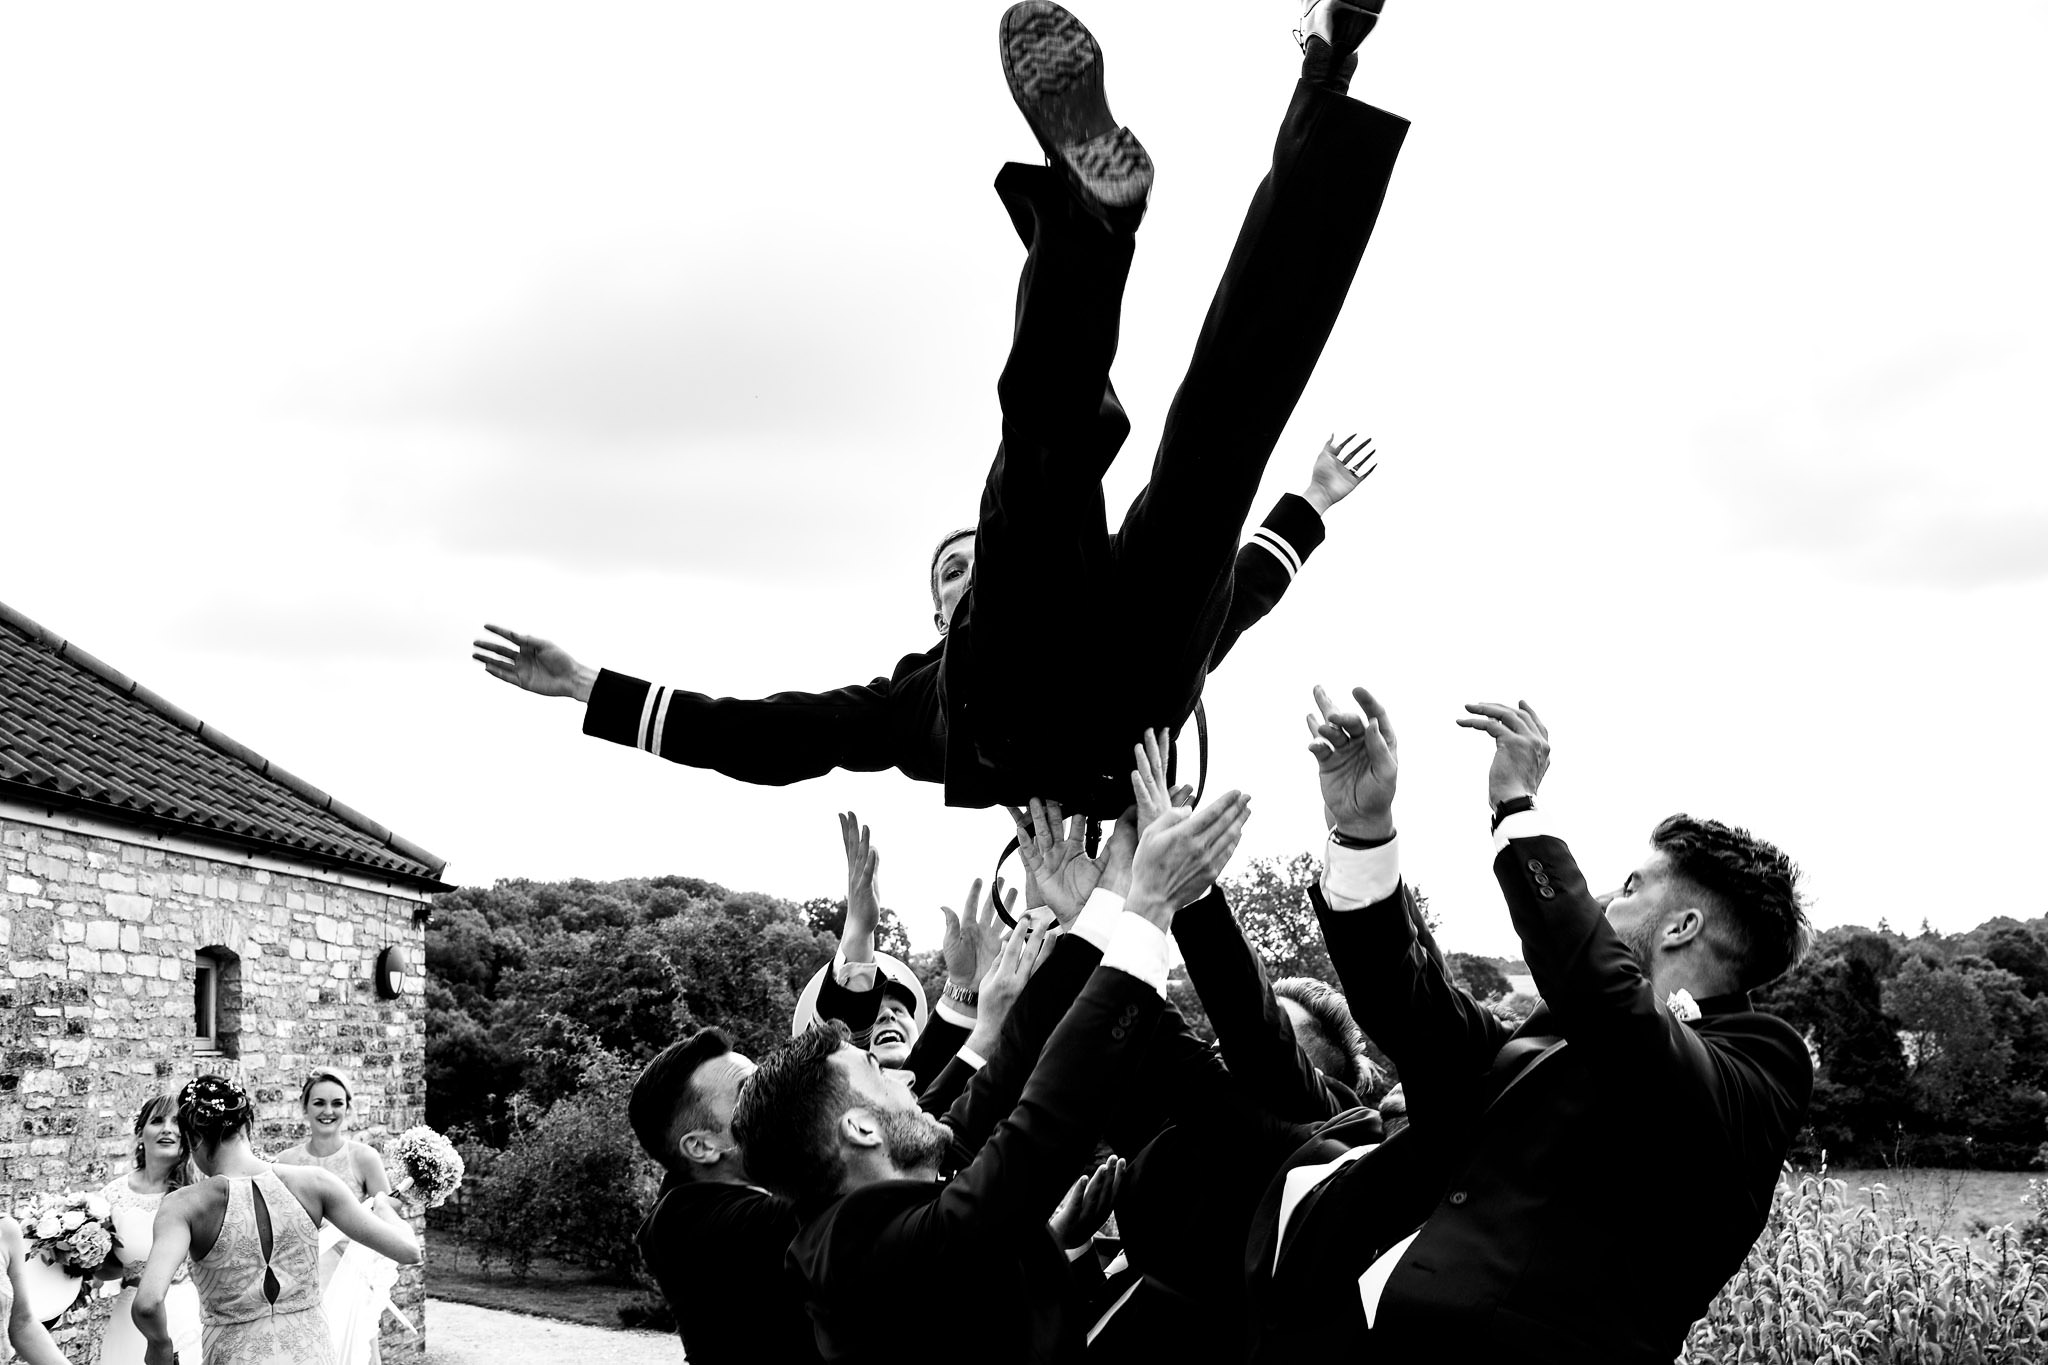 Groom thrown in the air by military brothers - photo by Rich Howman